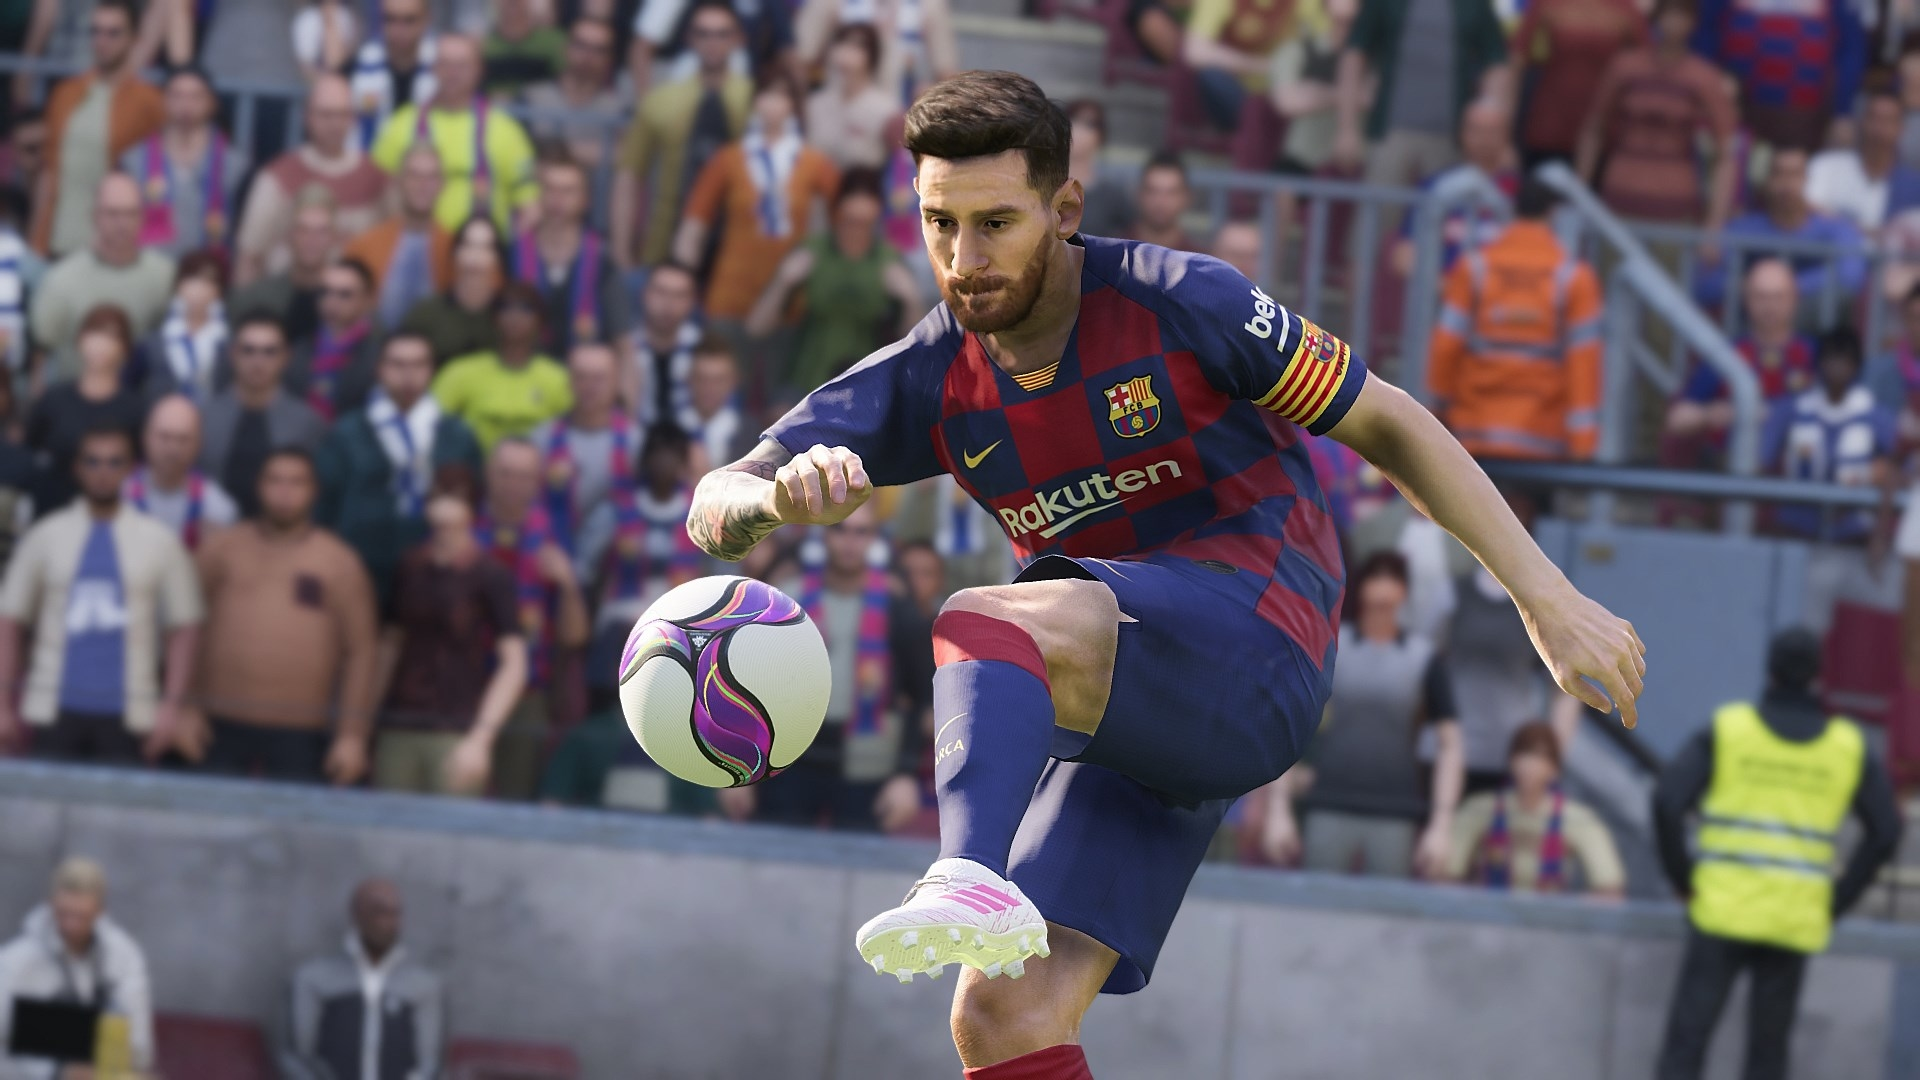 Lionel Messi In eFootball PES 2020 Wallpaper, HD Games 4K ...